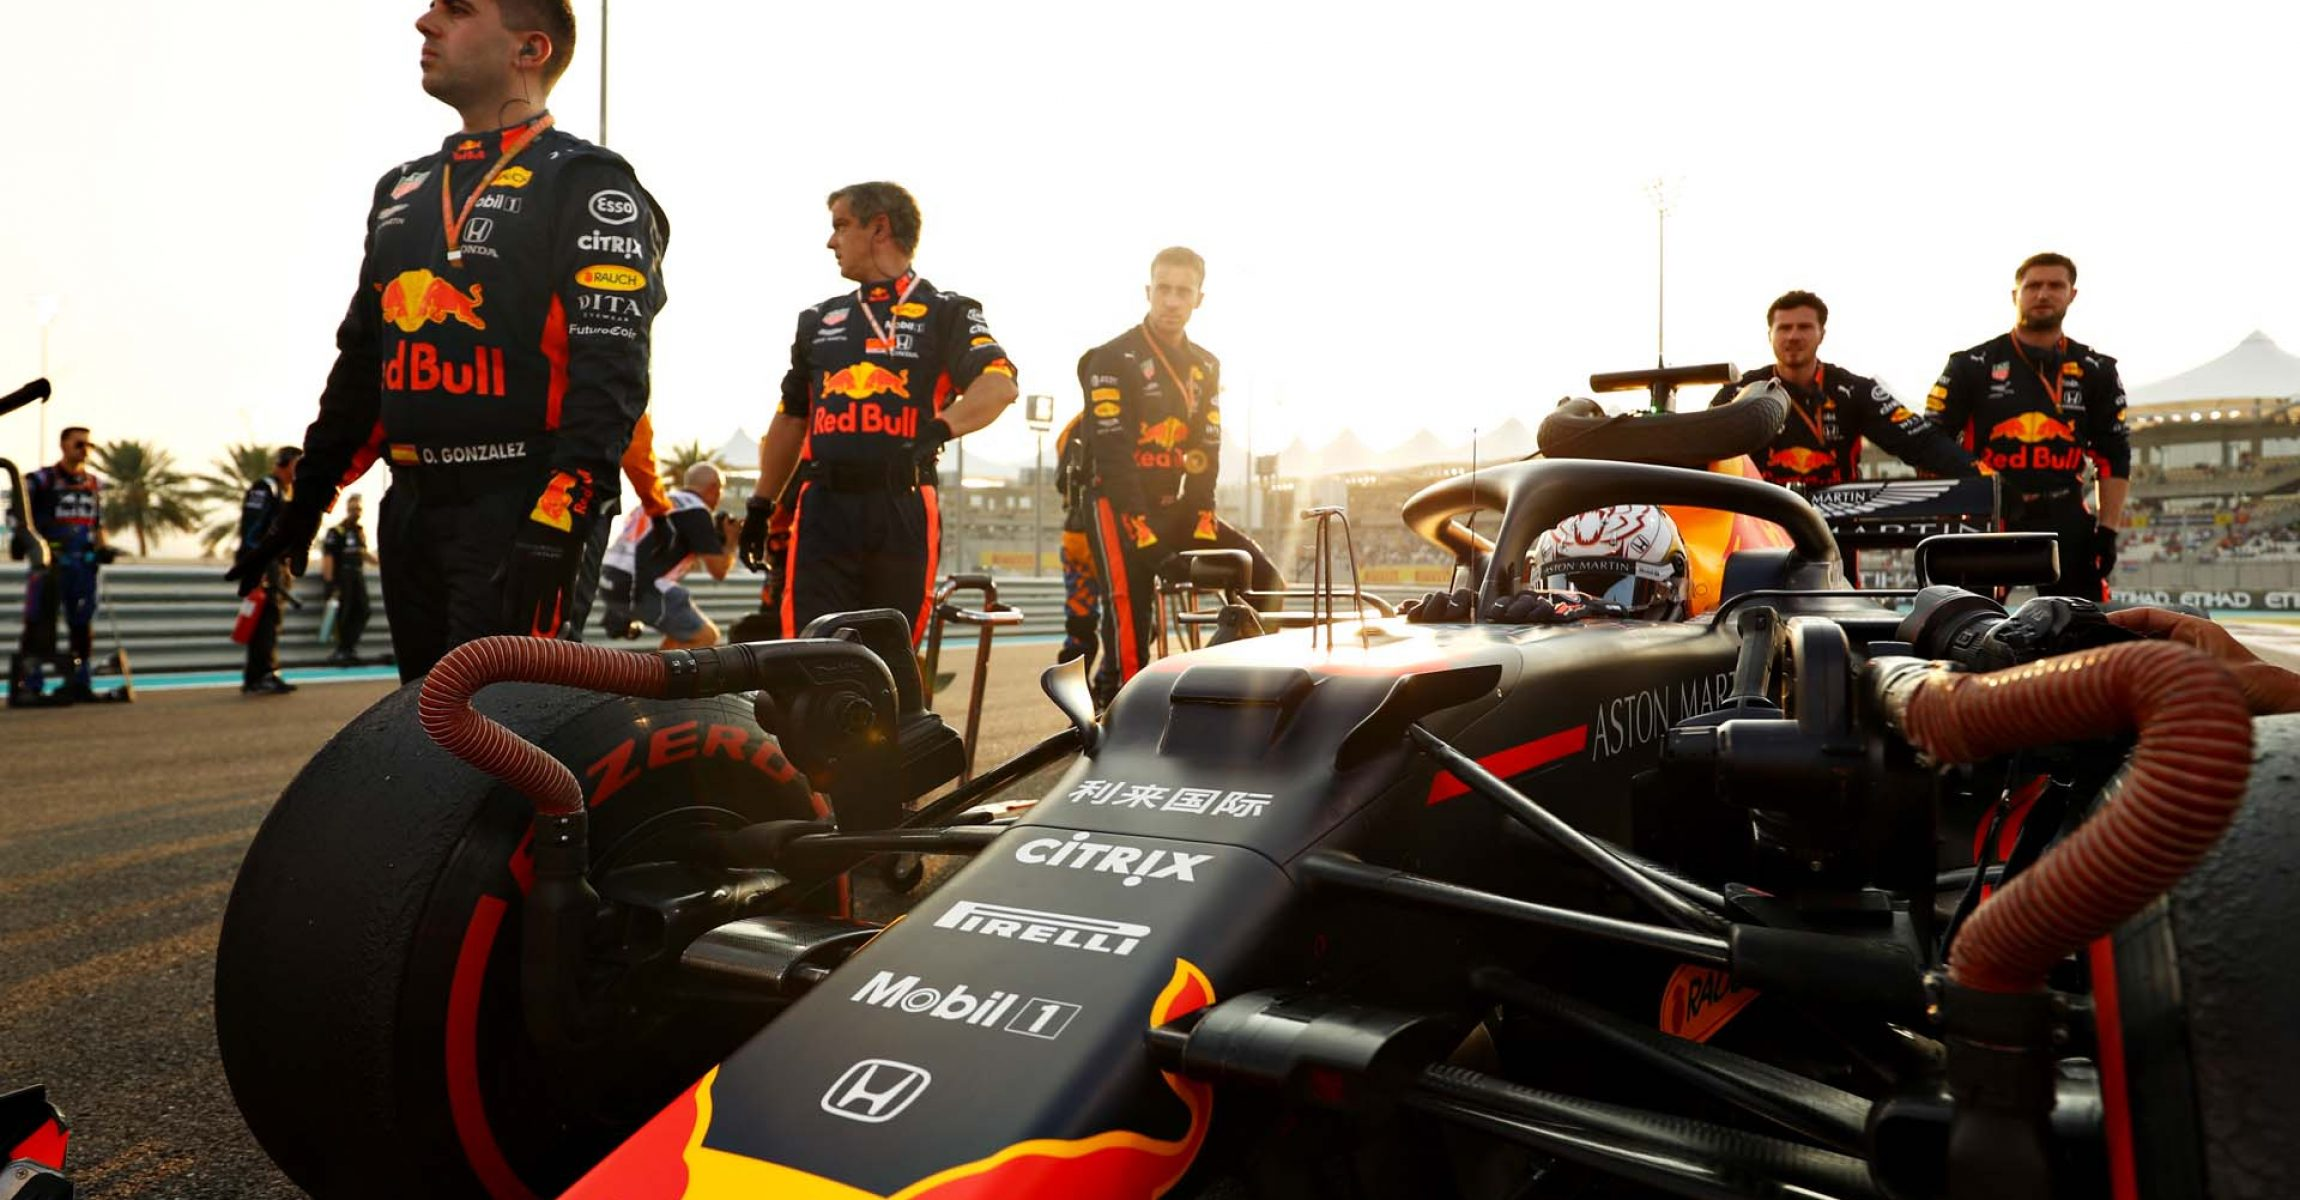 ABU DHABI, UNITED ARAB EMIRATES - DECEMBER 01: Max Verstappen of Netherlands and Red Bull Racing prepares to drive on the grid before the F1 Grand Prix of Abu Dhabi at Yas Marina Circuit on December 01, 2019 in Abu Dhabi, United Arab Emirates. (Photo by Mark Thompson/Getty Images) // Getty Images / Red Bull Content Pool // AP-22BWAF24W2111 // Usage for editorial use only //